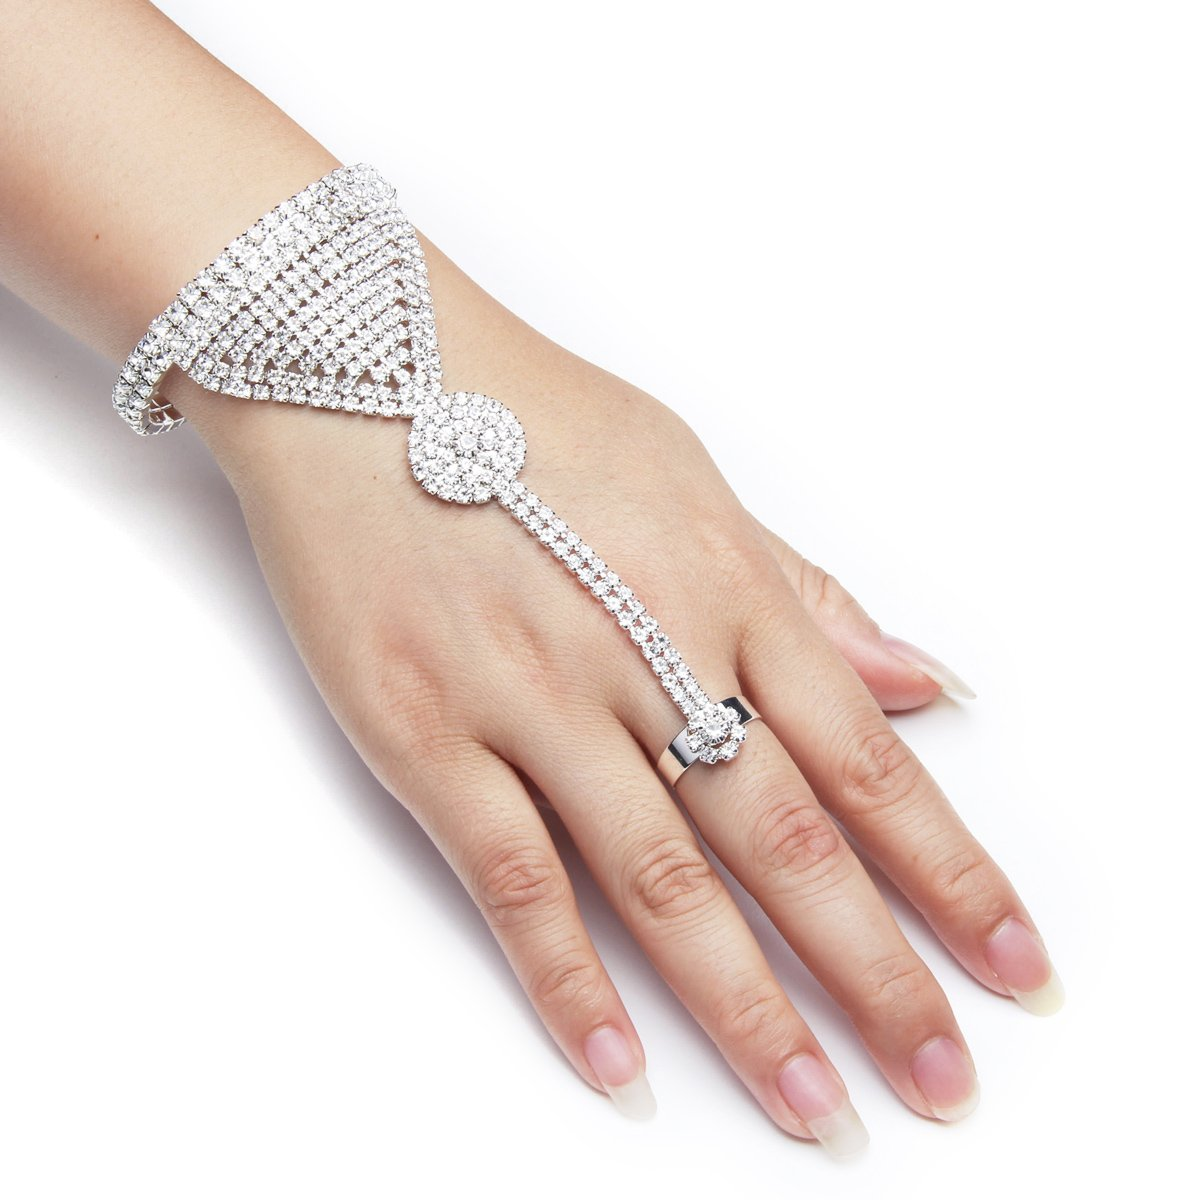 YUXI Silver Wedding Bride Hand Harness Latin Dancer Austria Crystal Bangle Finger Ring Free Size (Style 6)